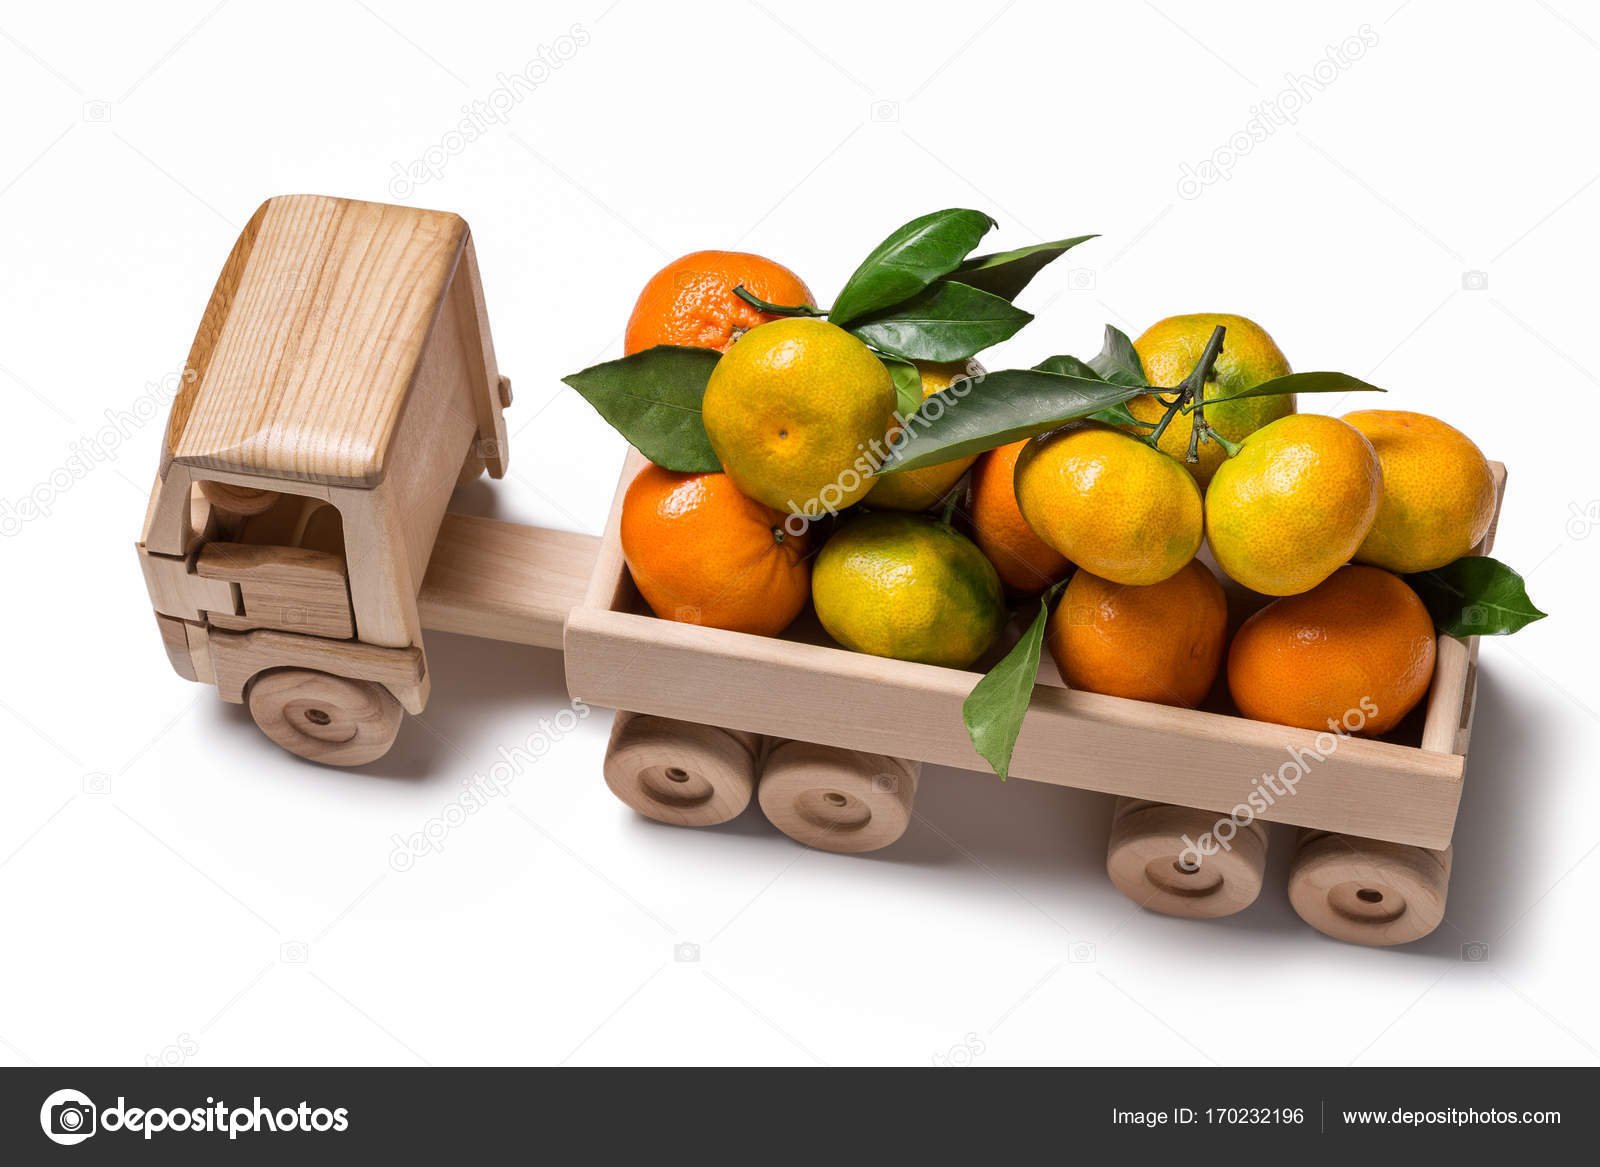 Clementine For Christmas.Toy Truck With Clementines And Tangerines For Christmas